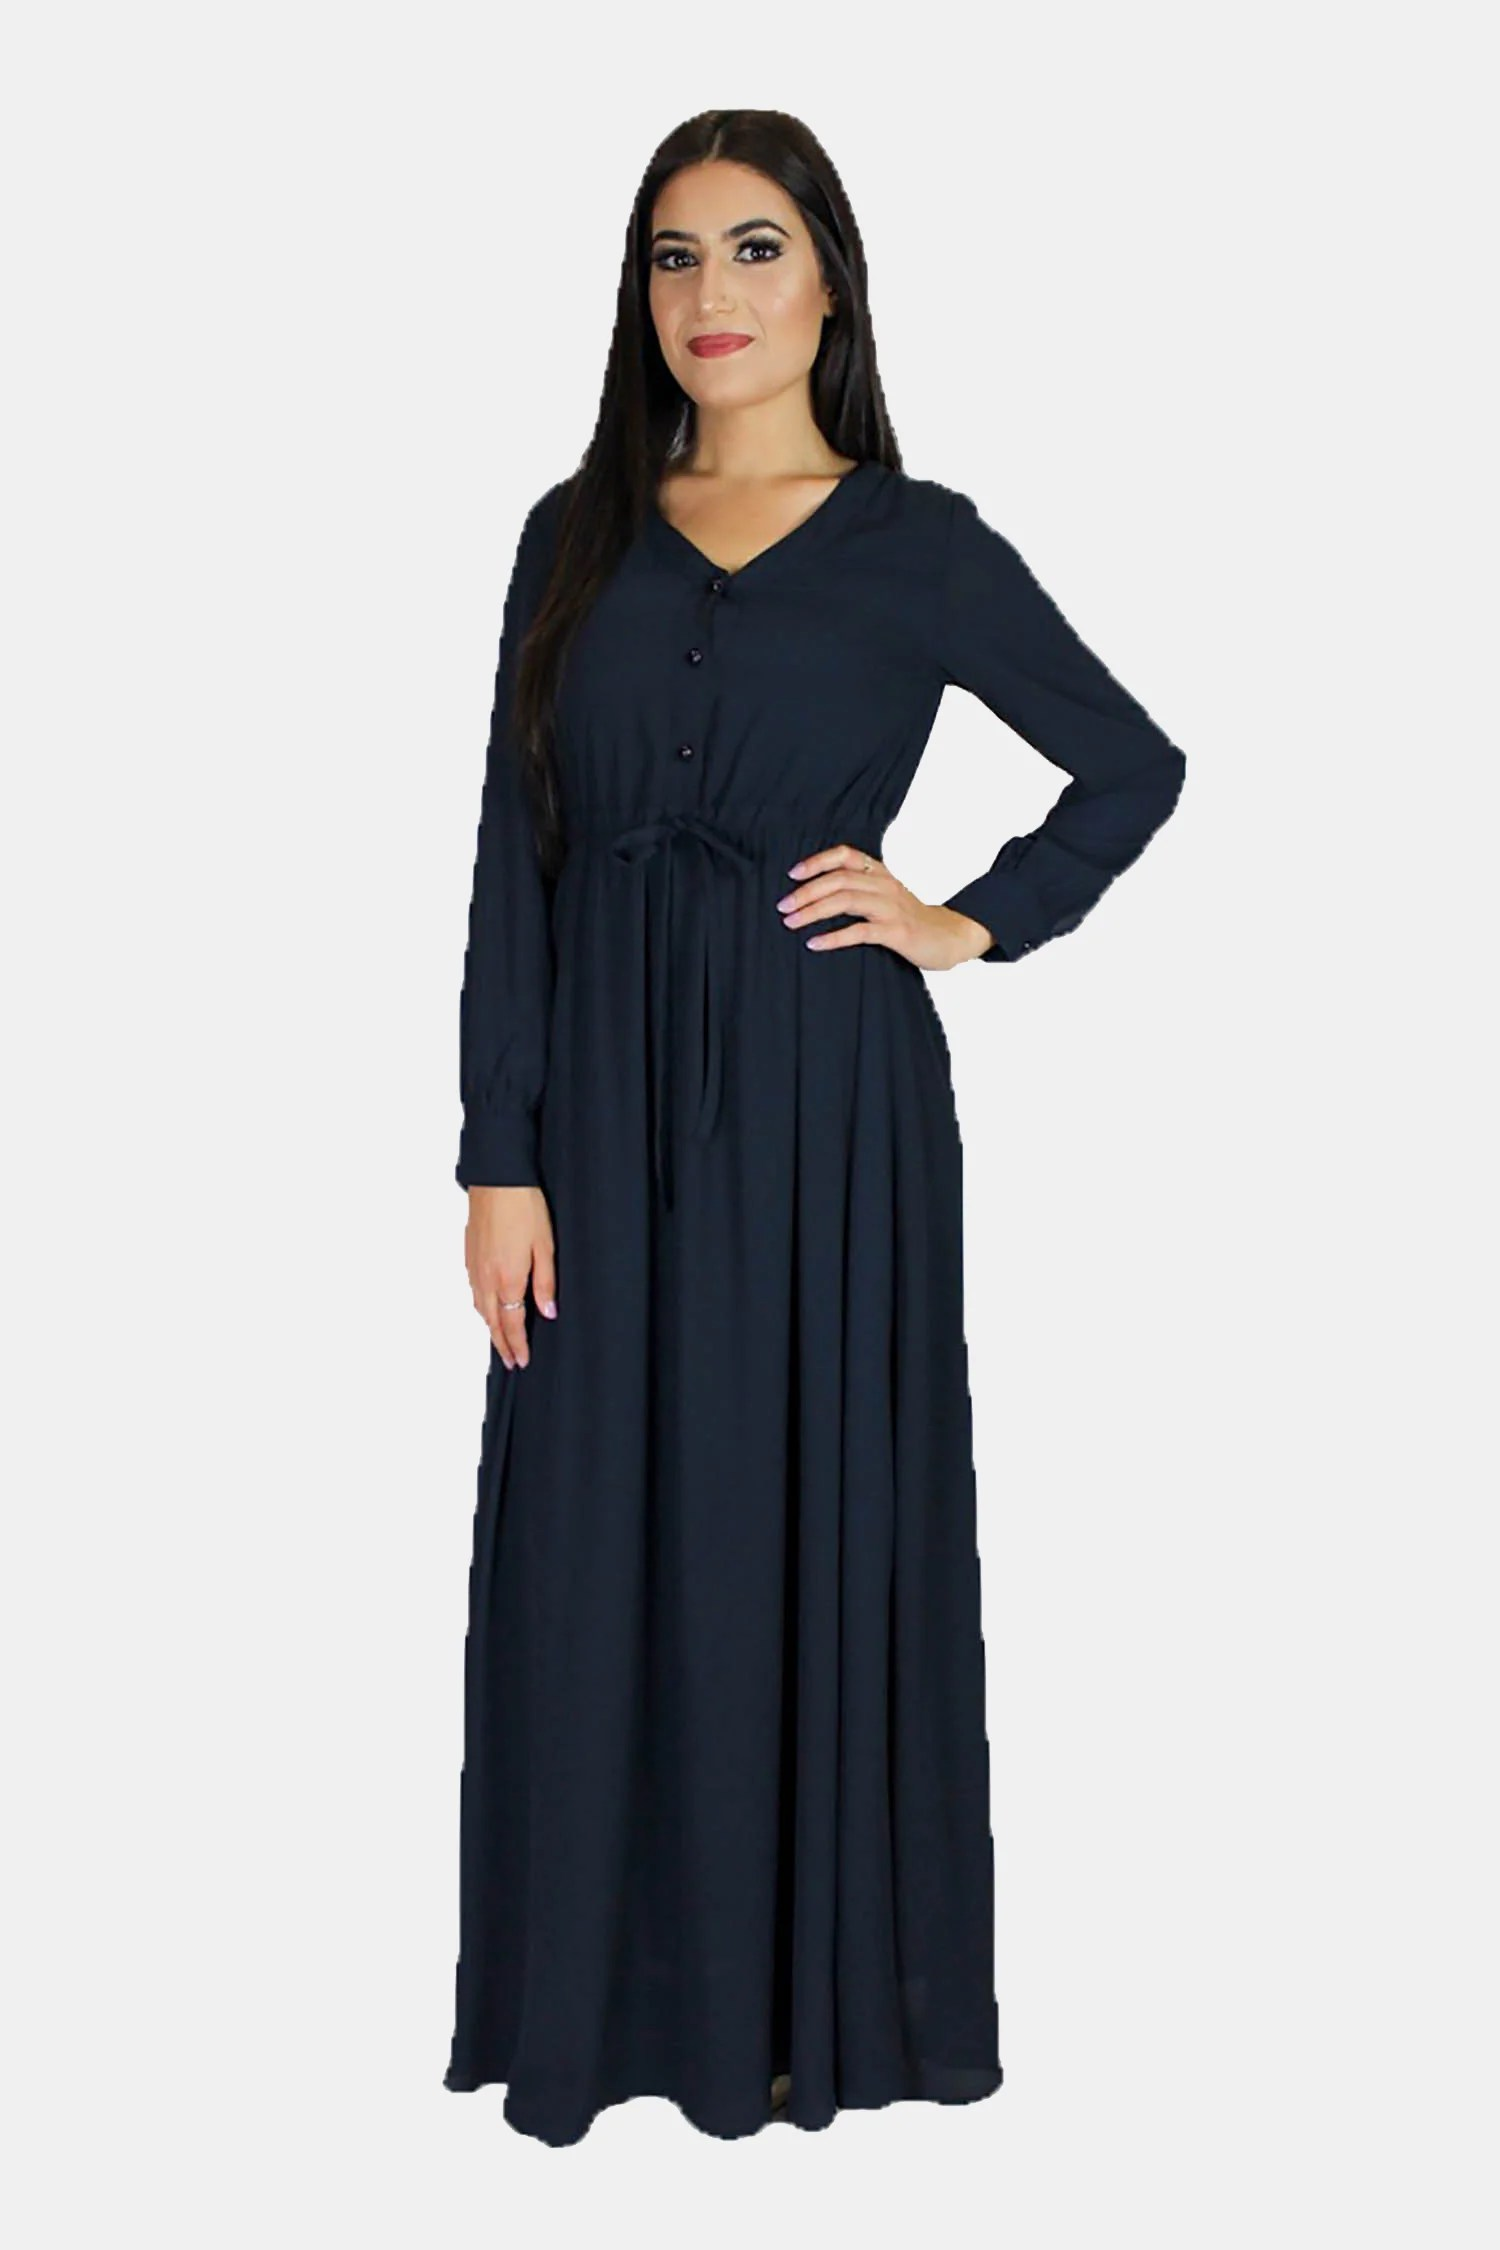 Navy Blue Chiffon Button Maxi Dress Abayati Fashion